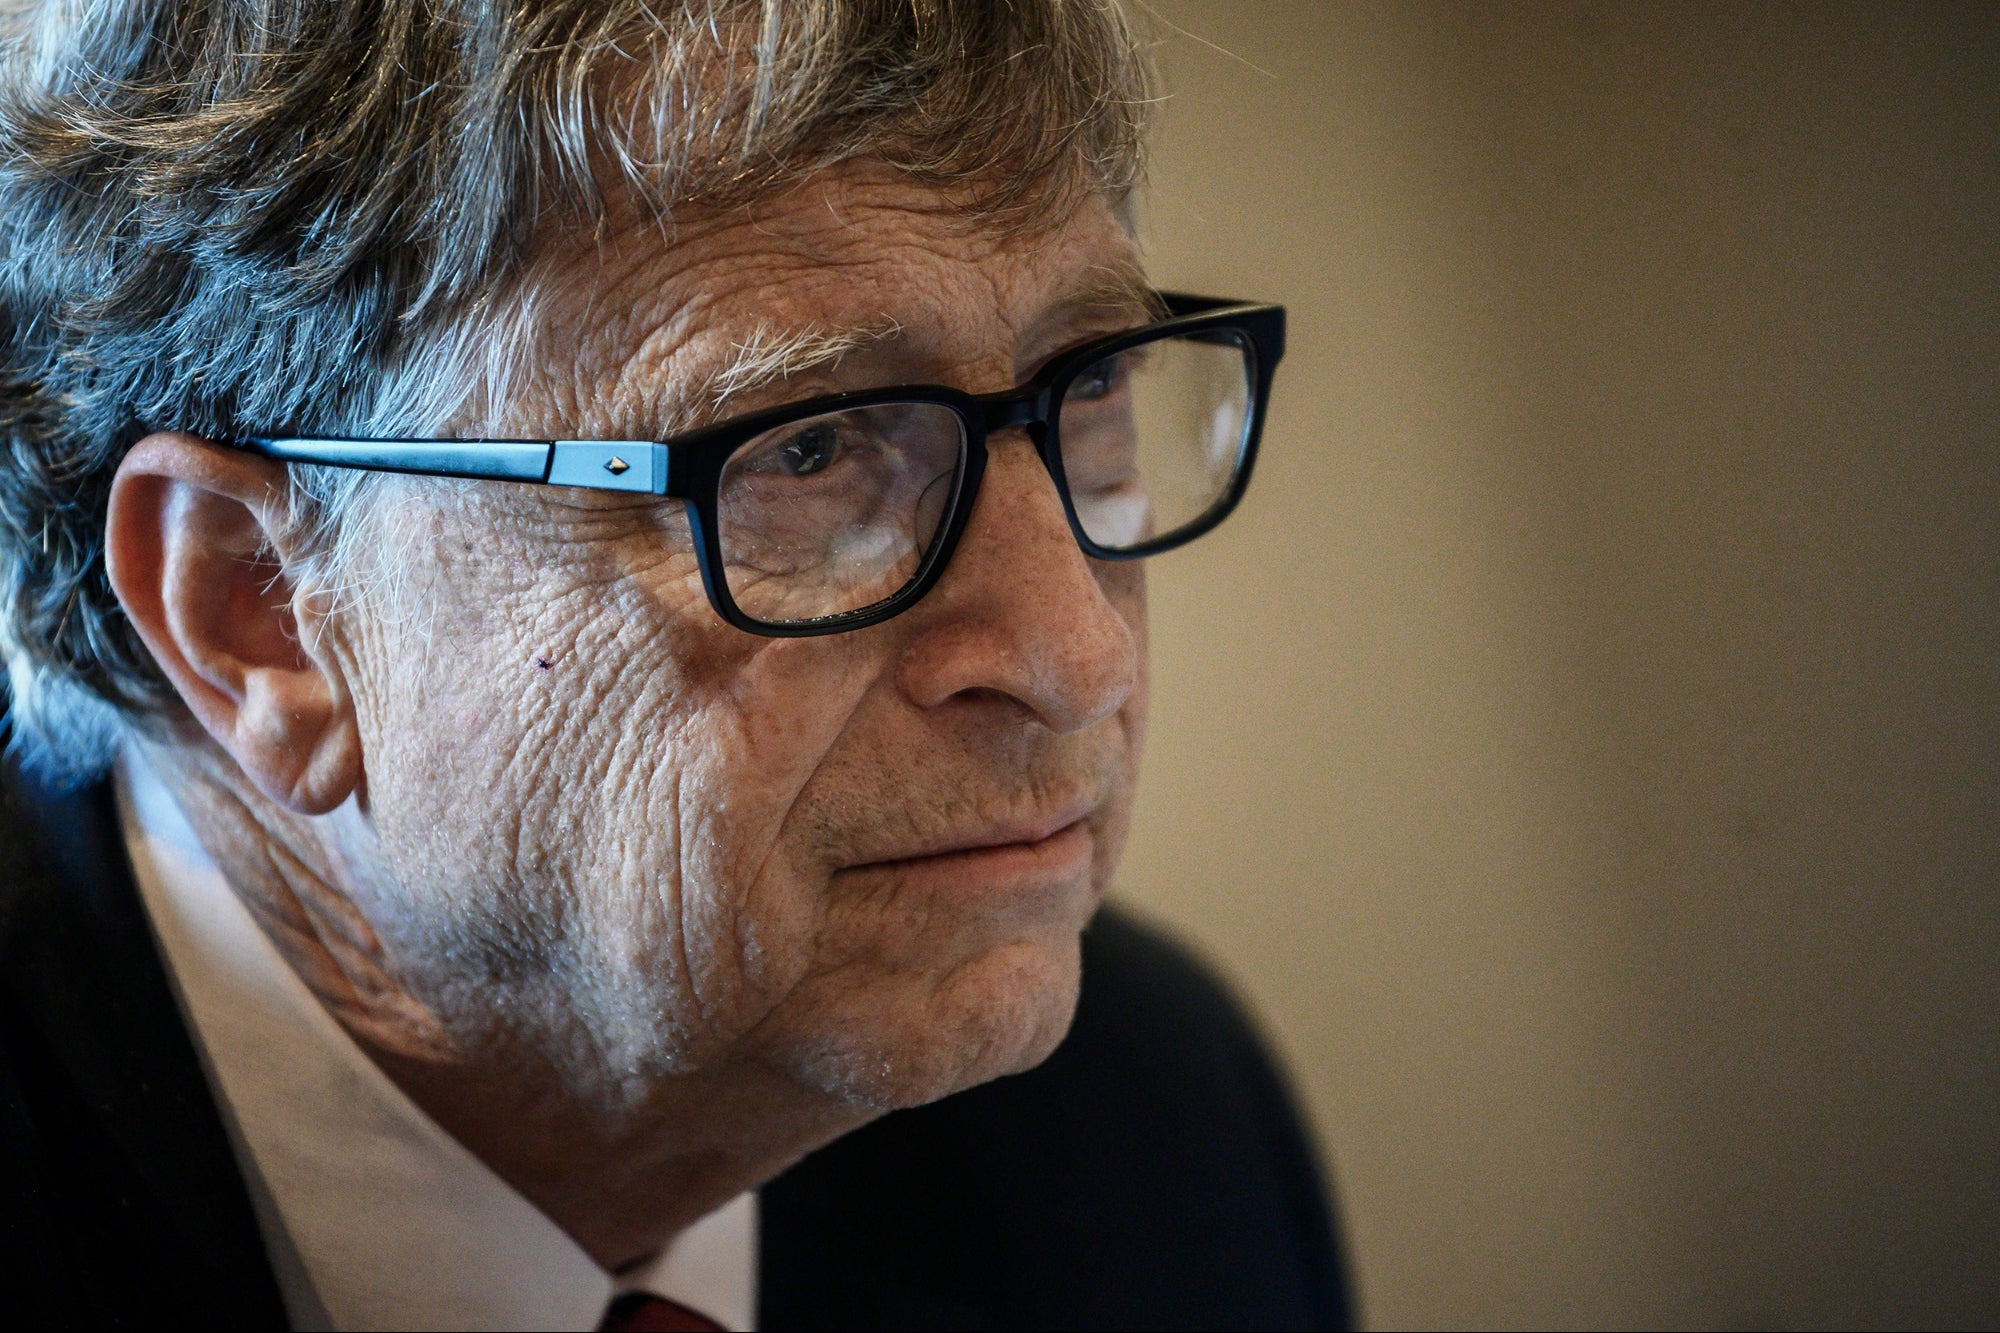 Bill Gates Gets Visibly Bothered When Pressed on Epstein Relationship: 'Well, He's Dead'